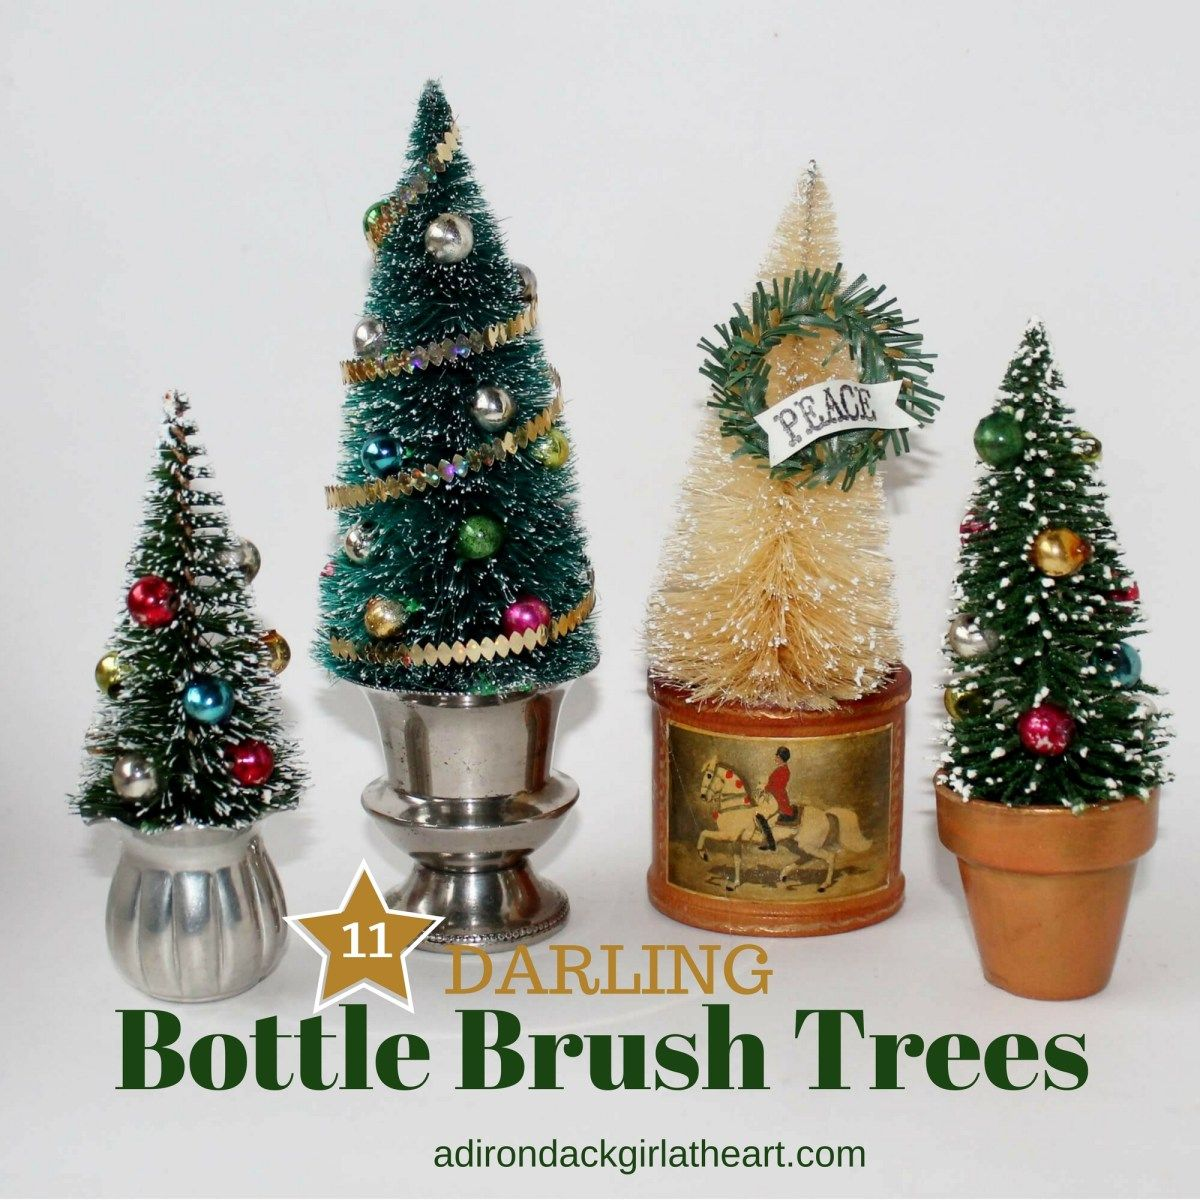 11 Darling Bottle Brush Trees Adirondack Girl Heart Bottle Brush Christmas Trees Vintage Christmas Crafts Christmas Ornaments